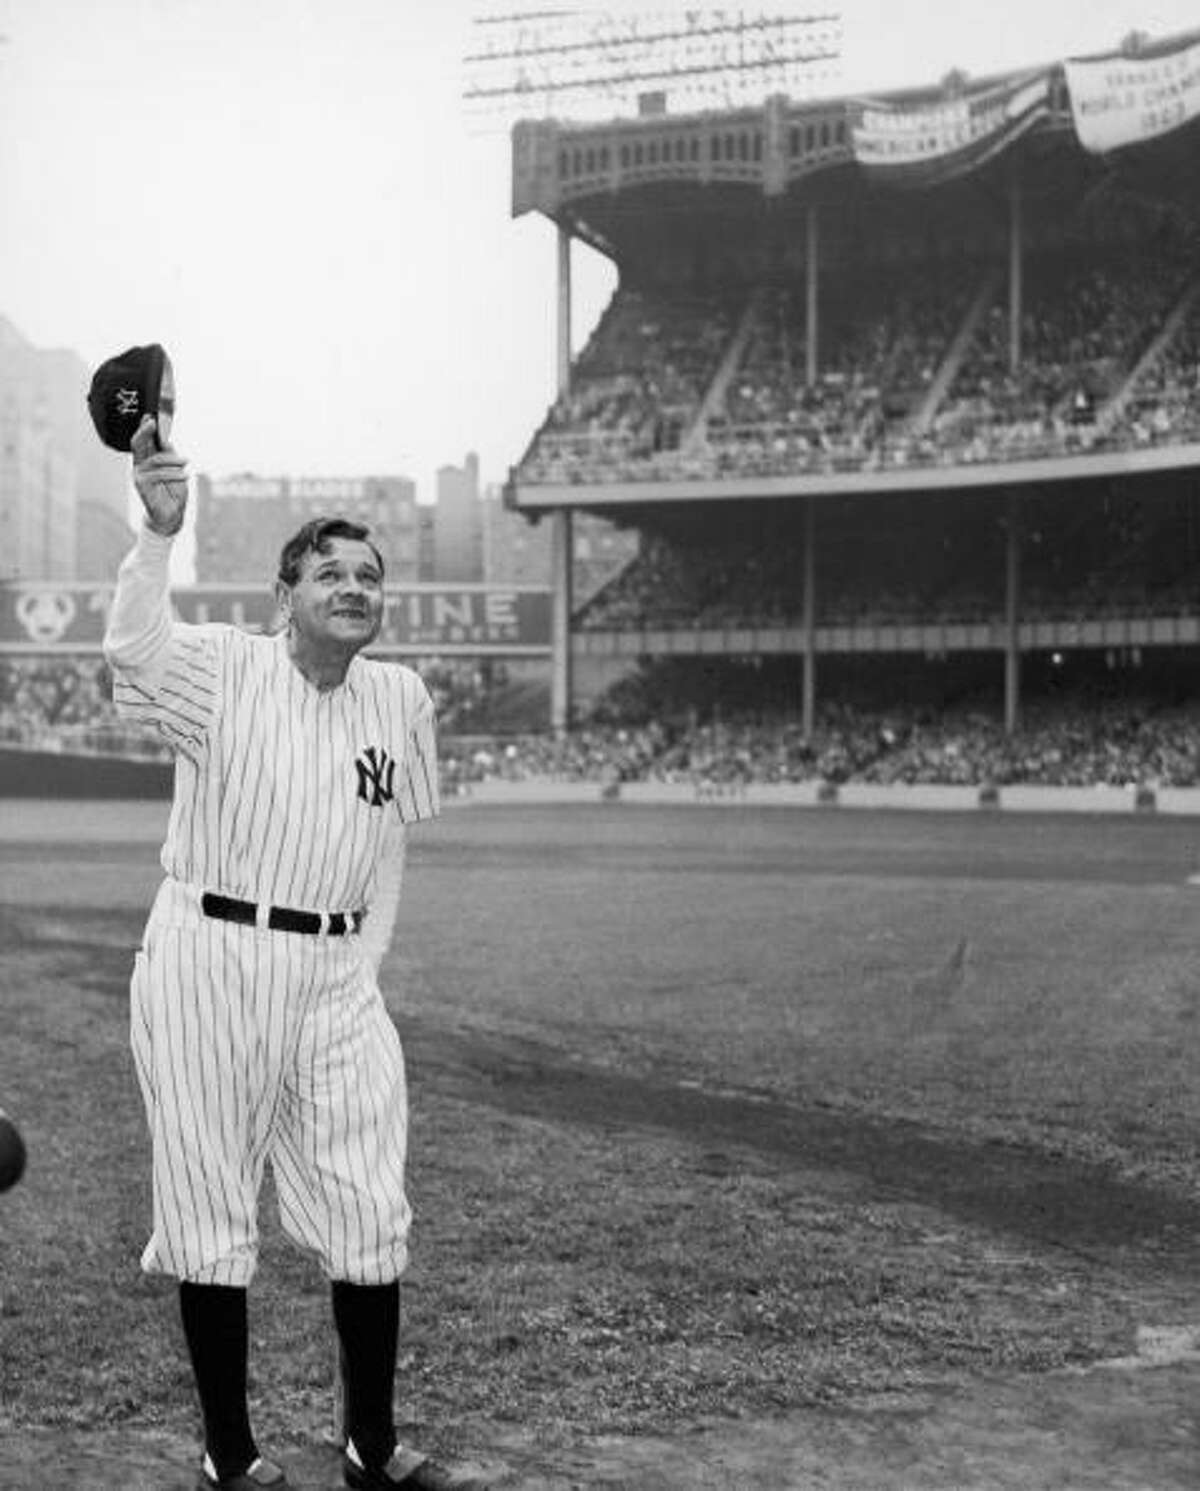 American baseball player Babe Ruth (1895 - 1948) (born George Herman Ruth Jr), dressed in his old New York Yankees number (#3), waves to the crowd during a reunion of Yankee All-Stars at Yankee Stadium, New York, New York, June 16, 1948. Ruth, suffering at the time from cancer and using a baseball bat as a cane (barely visible behind him), died two months later.